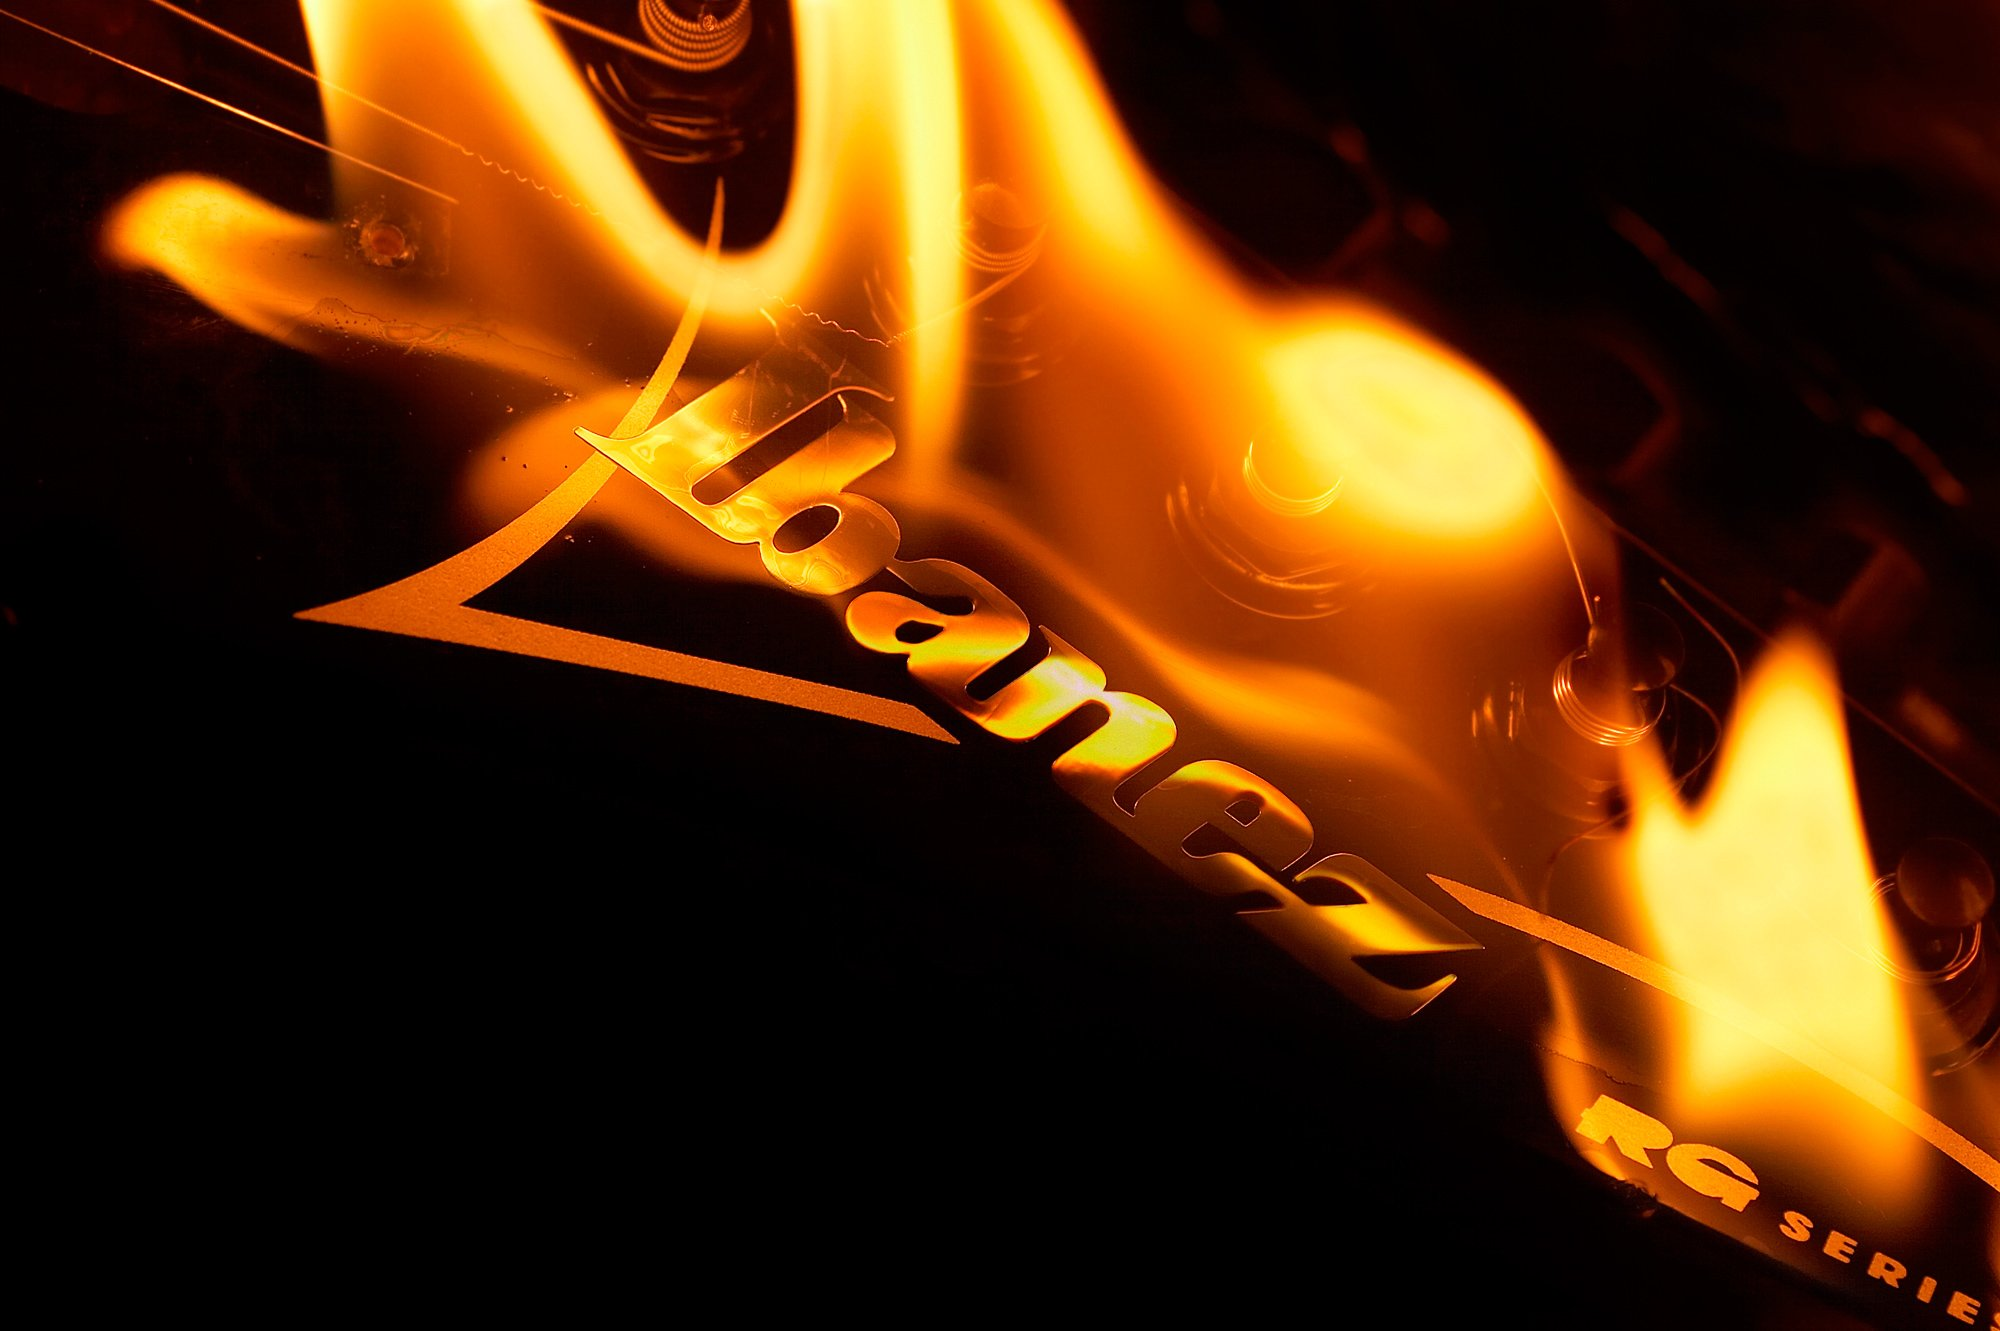 Amazing Music Wallpapers: Amazing Ibanez Fire Music HD Wallpaper Picture Free